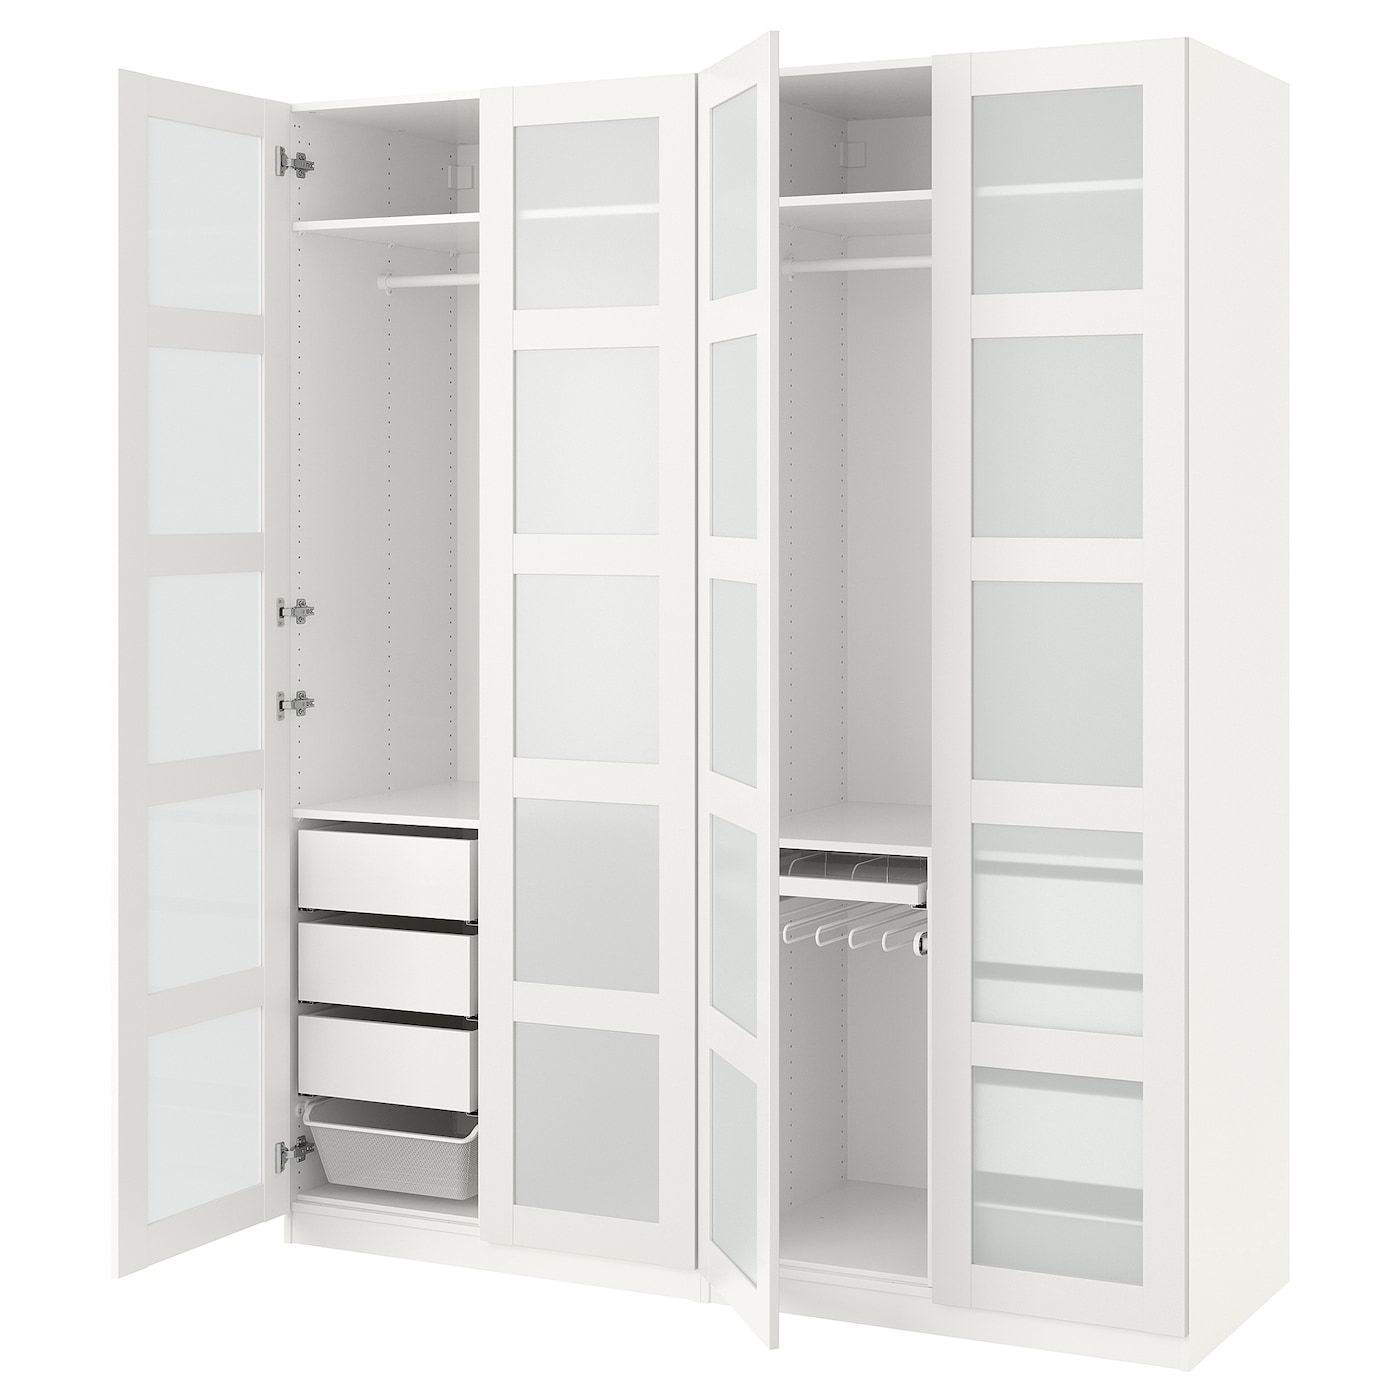 Pax Wardrobe White Bergsbo Frosted Glass 78 3 4x23 5 8x93 1 8